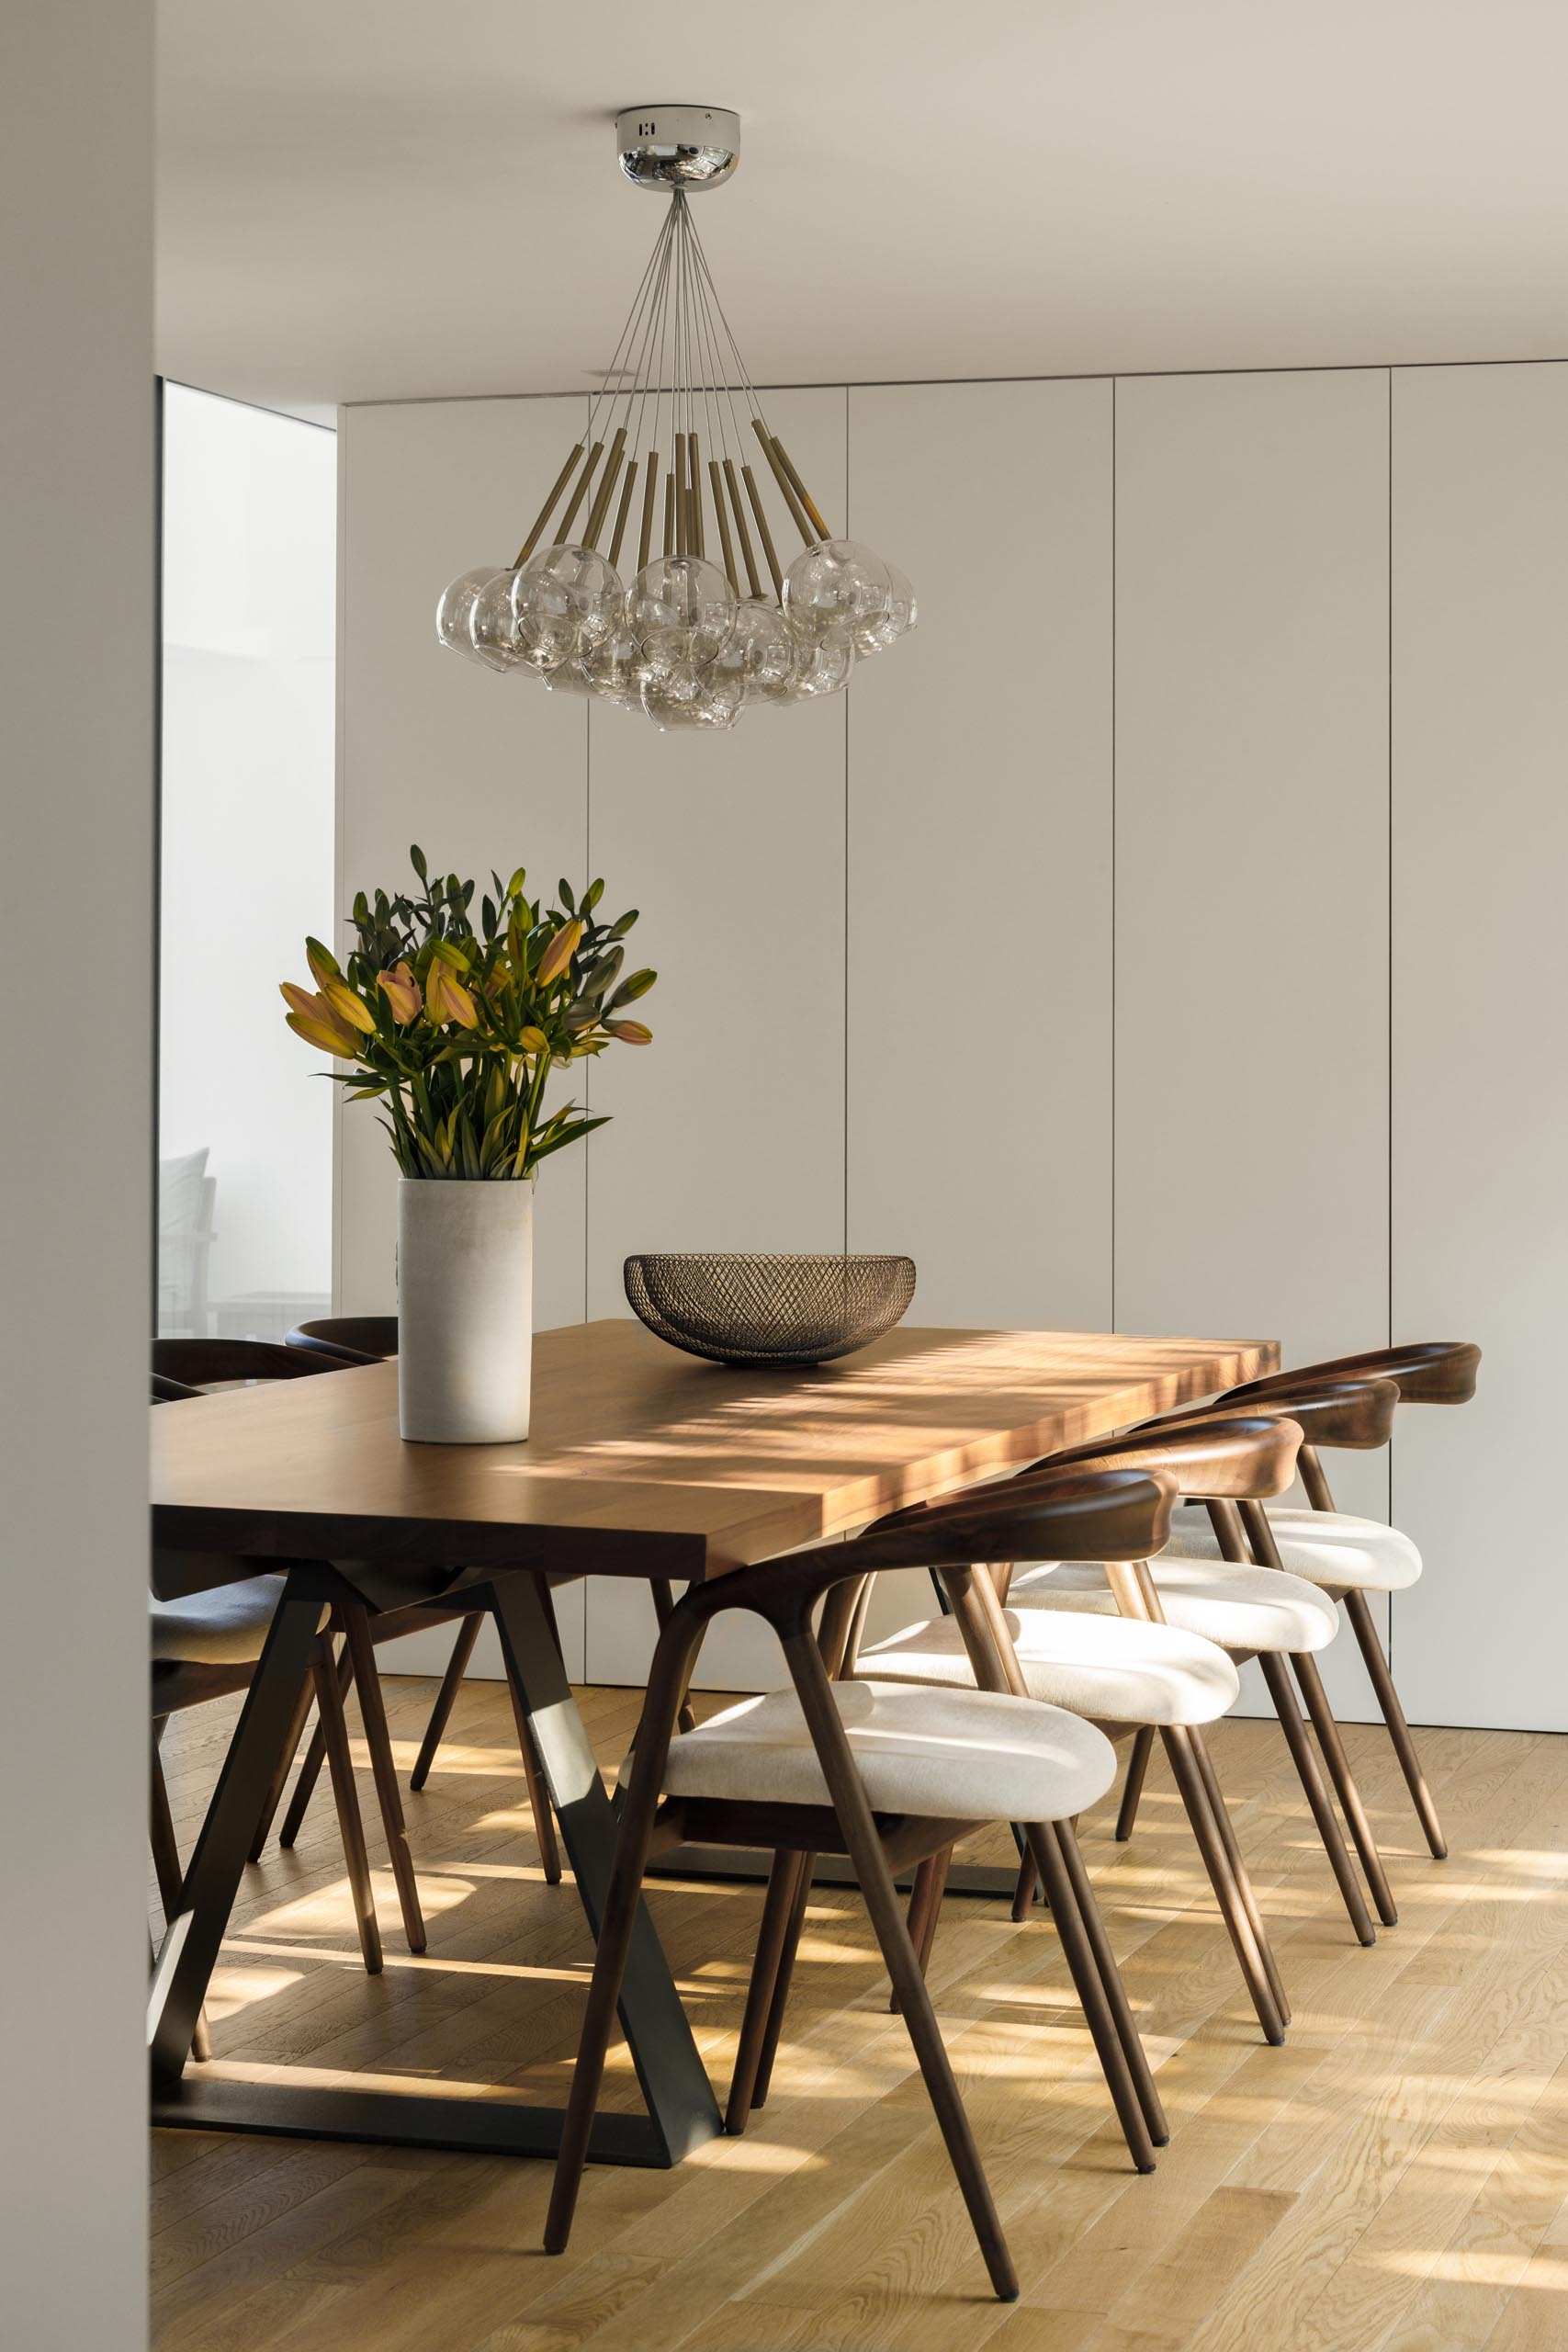 This modern open plan dining area has been furnished with a large wood table and chairs with upholstered seat cushions.